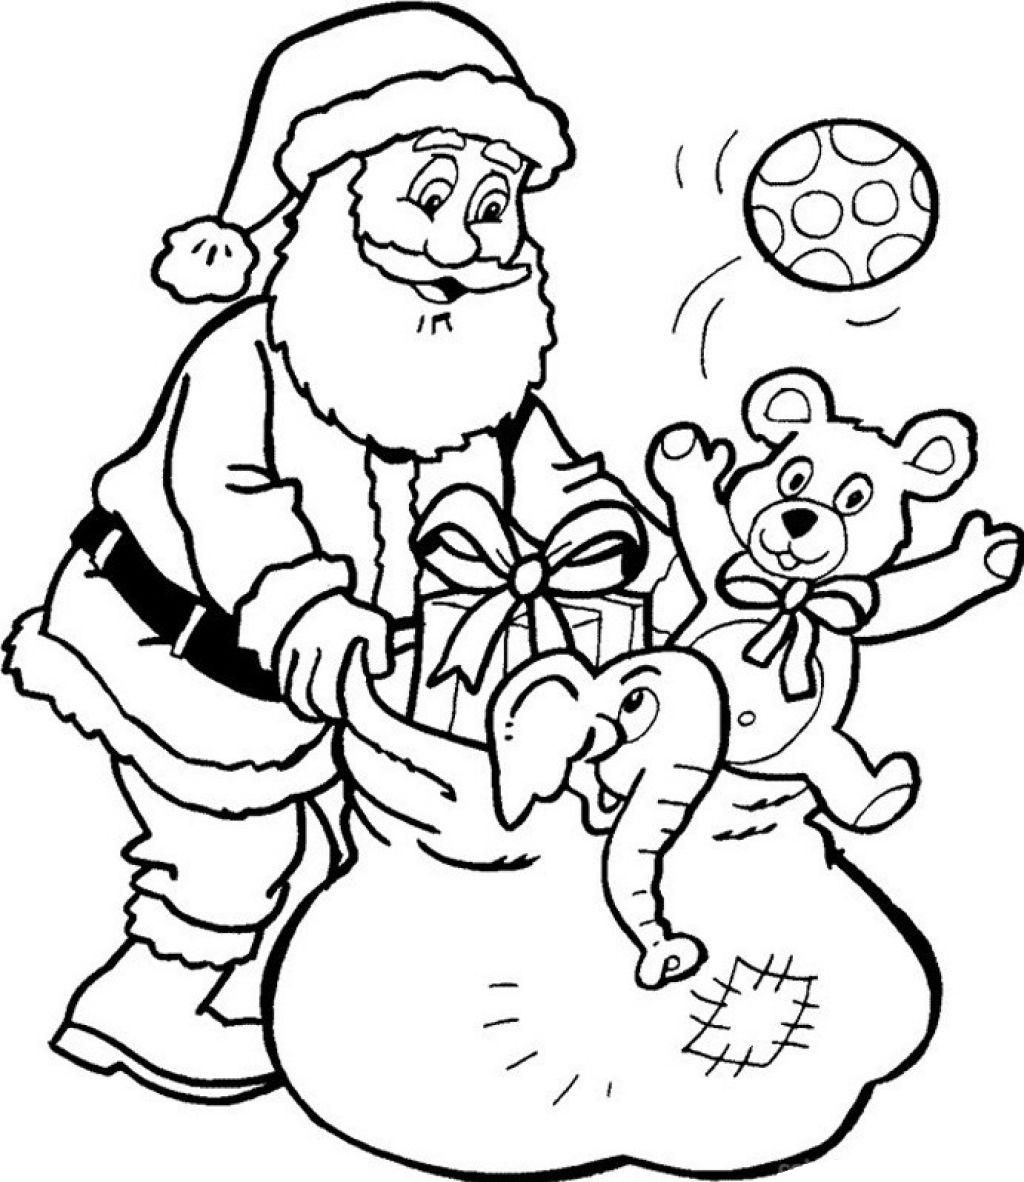 photograph relating to Santa Printable Coloring Pages identify Santa Claus And Features Printable Coloring Web pages Xmas